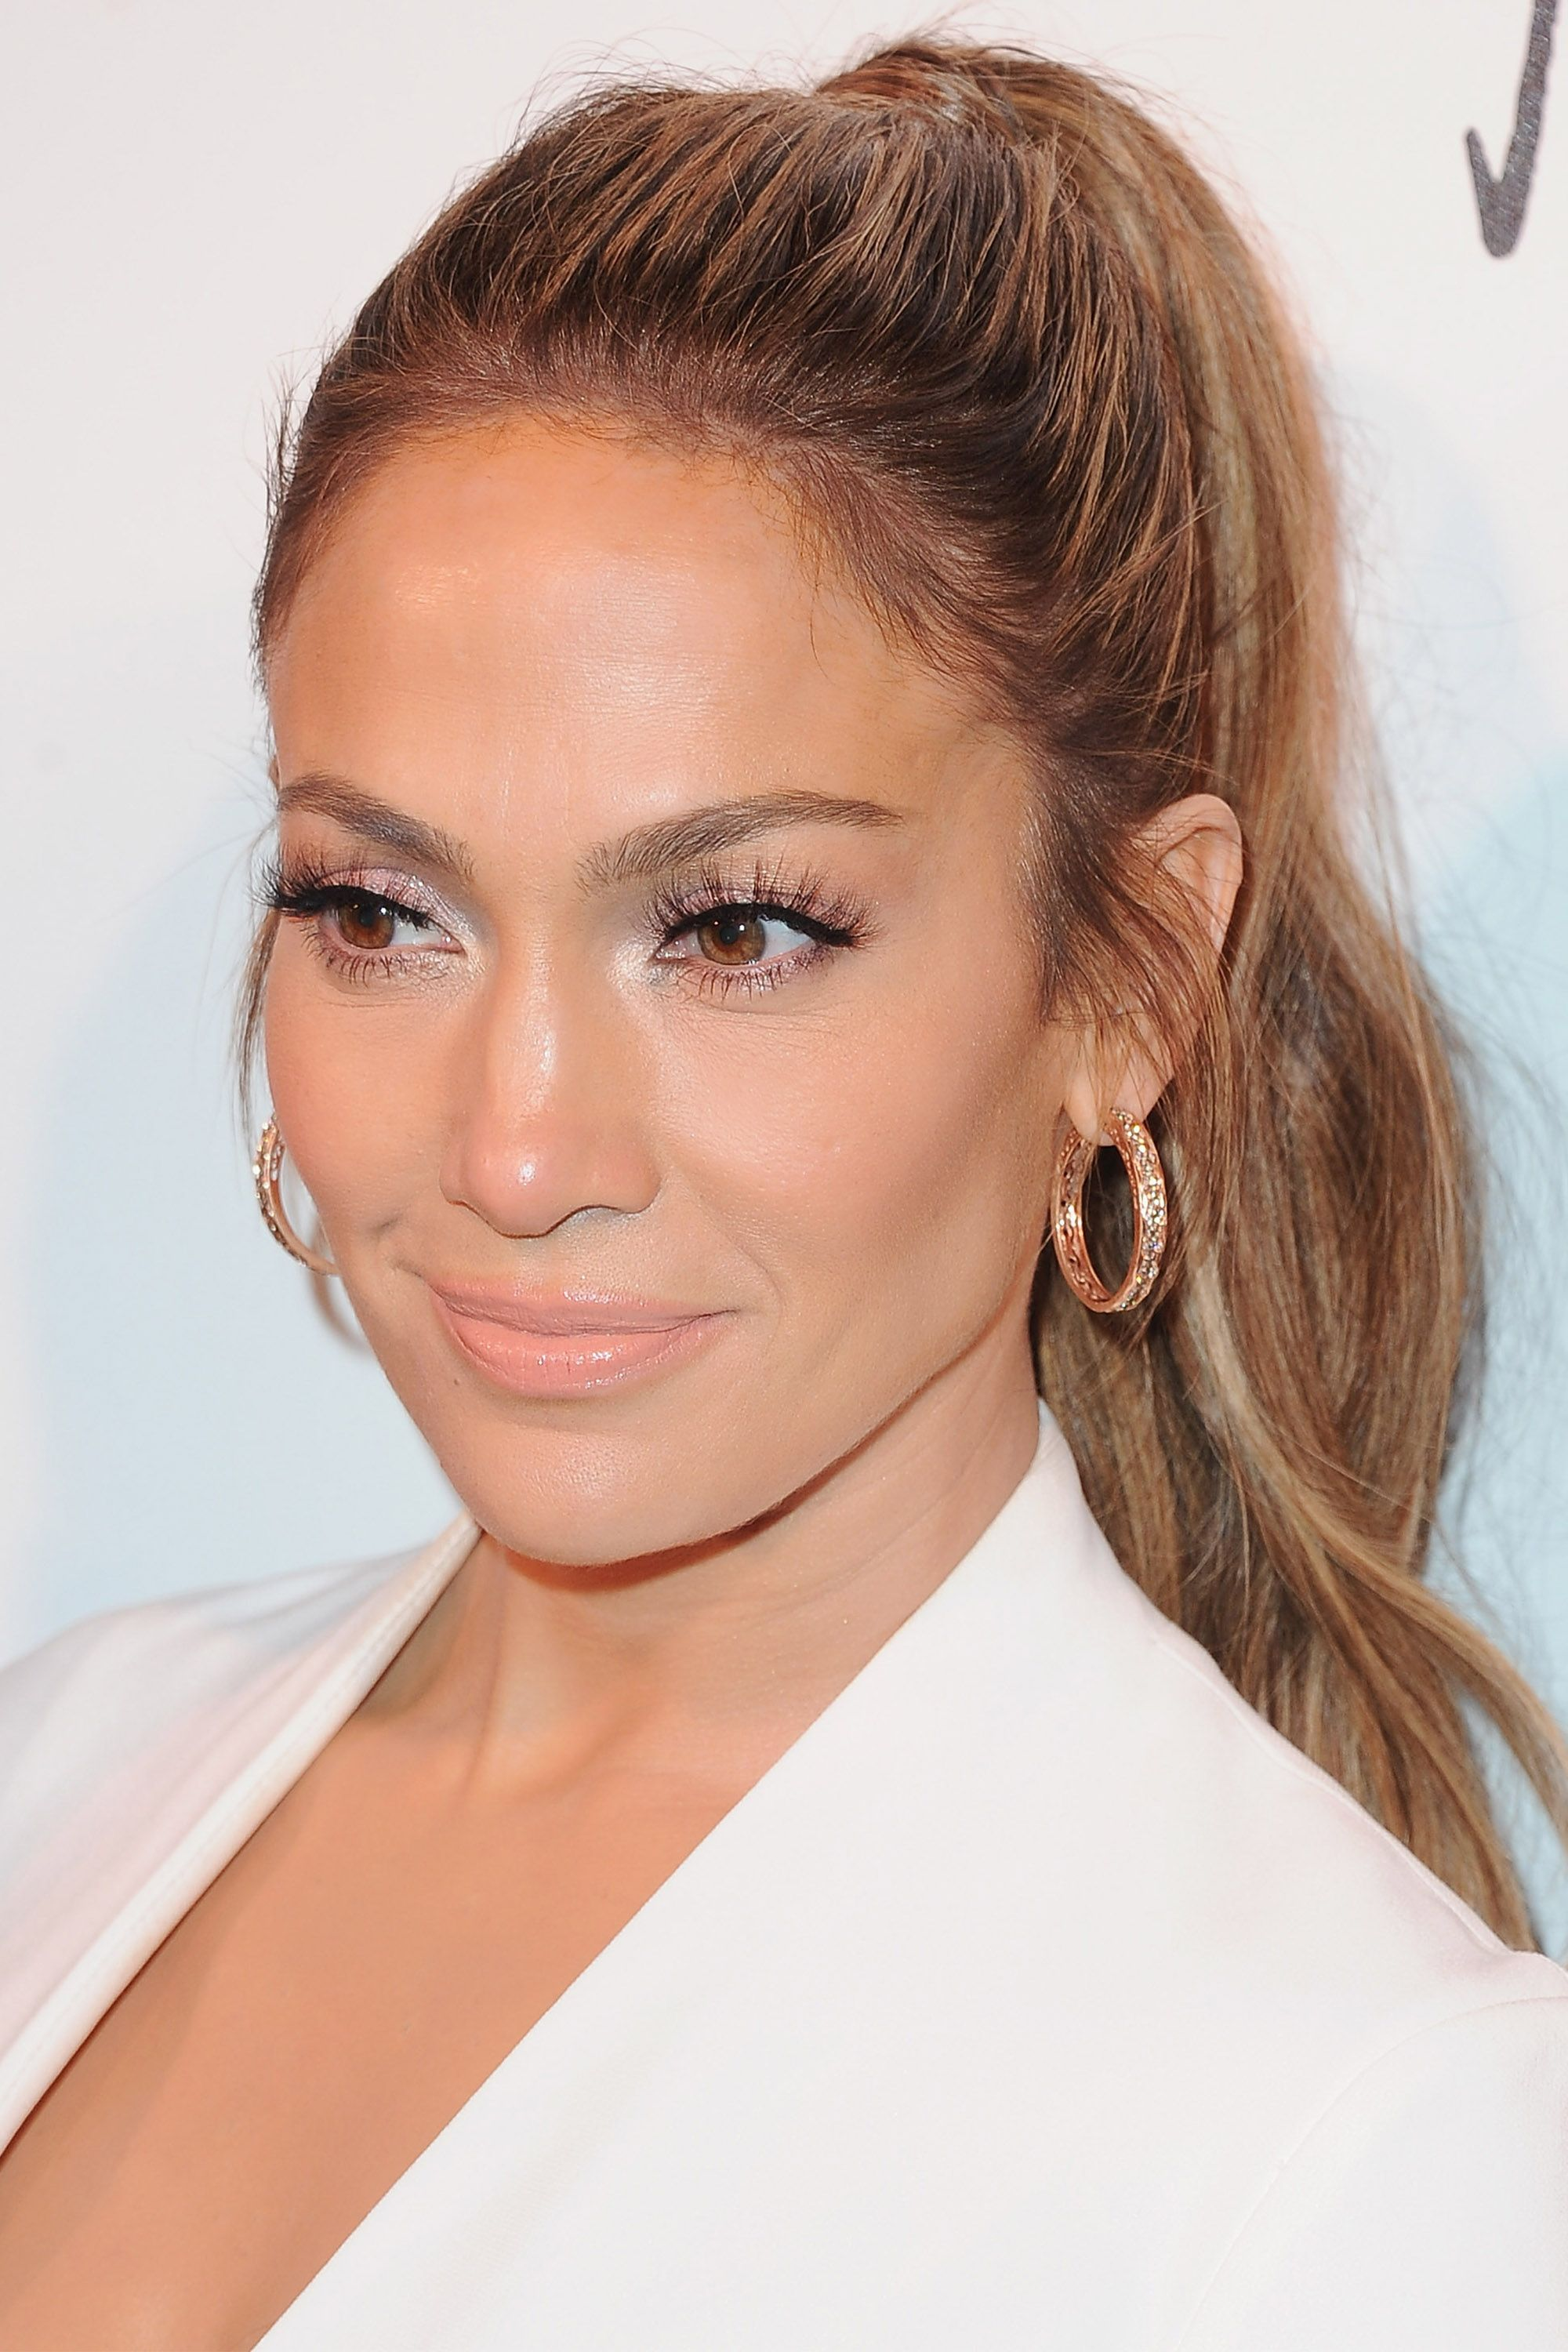 20 Chic Ways To Upgrade A Boring Ponytail Jennifer Lopez Hair Ponytail Hairstyles Pretty Ponytails